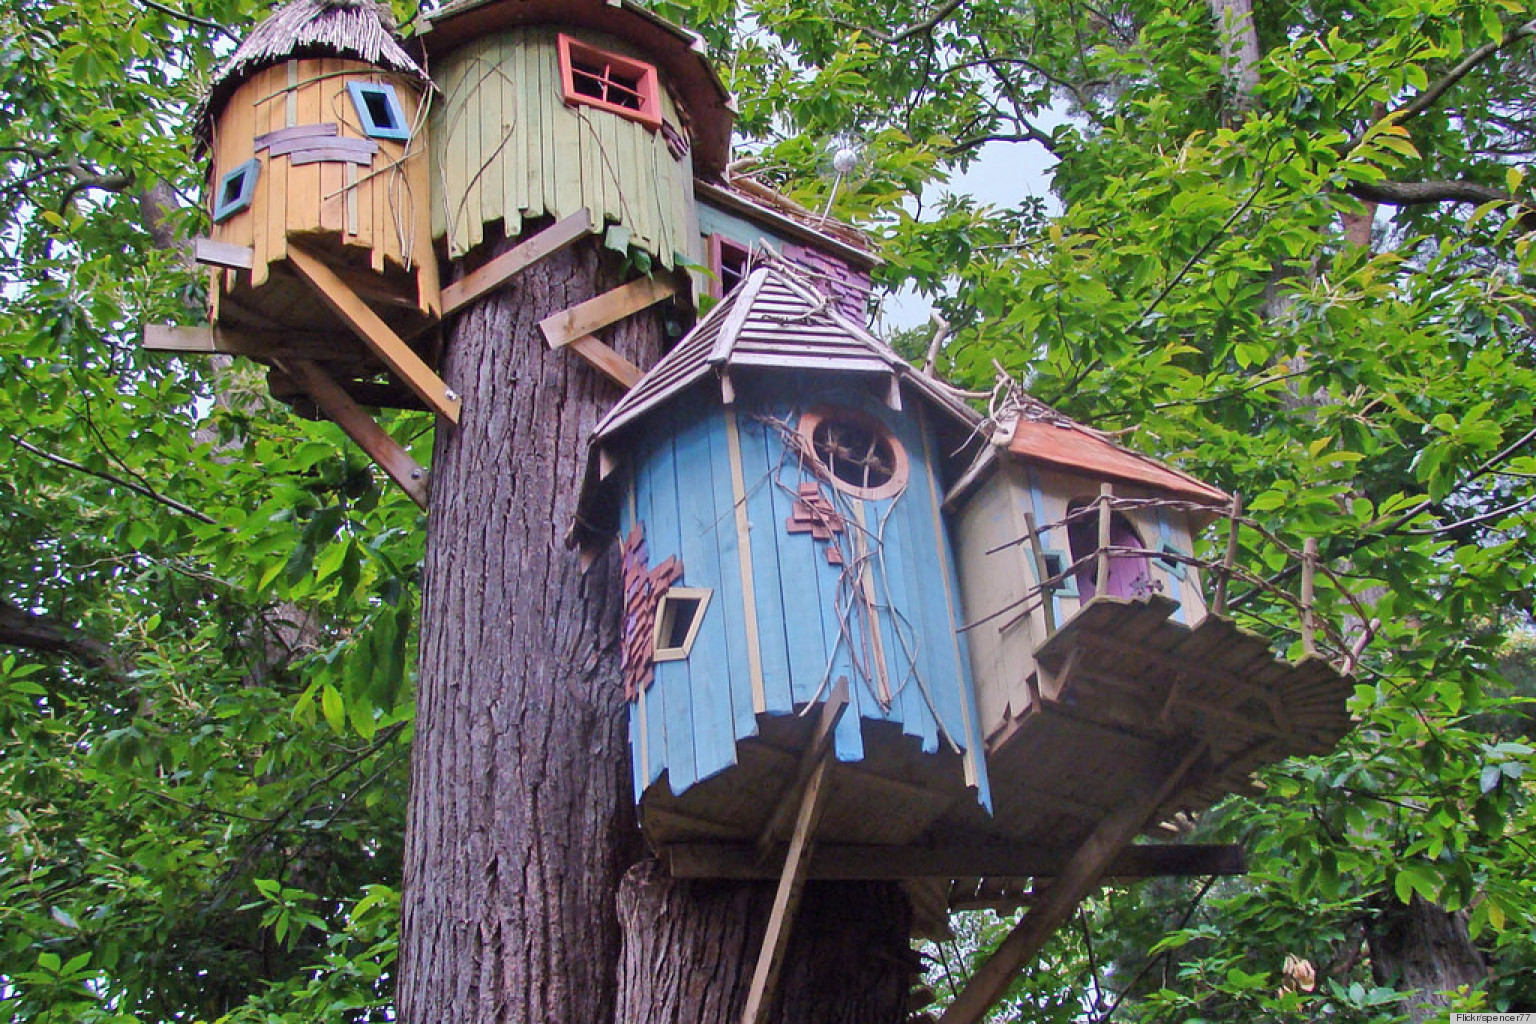 Cool Treehouse Designs We Wish We Had In Our Backyard PHOTOS